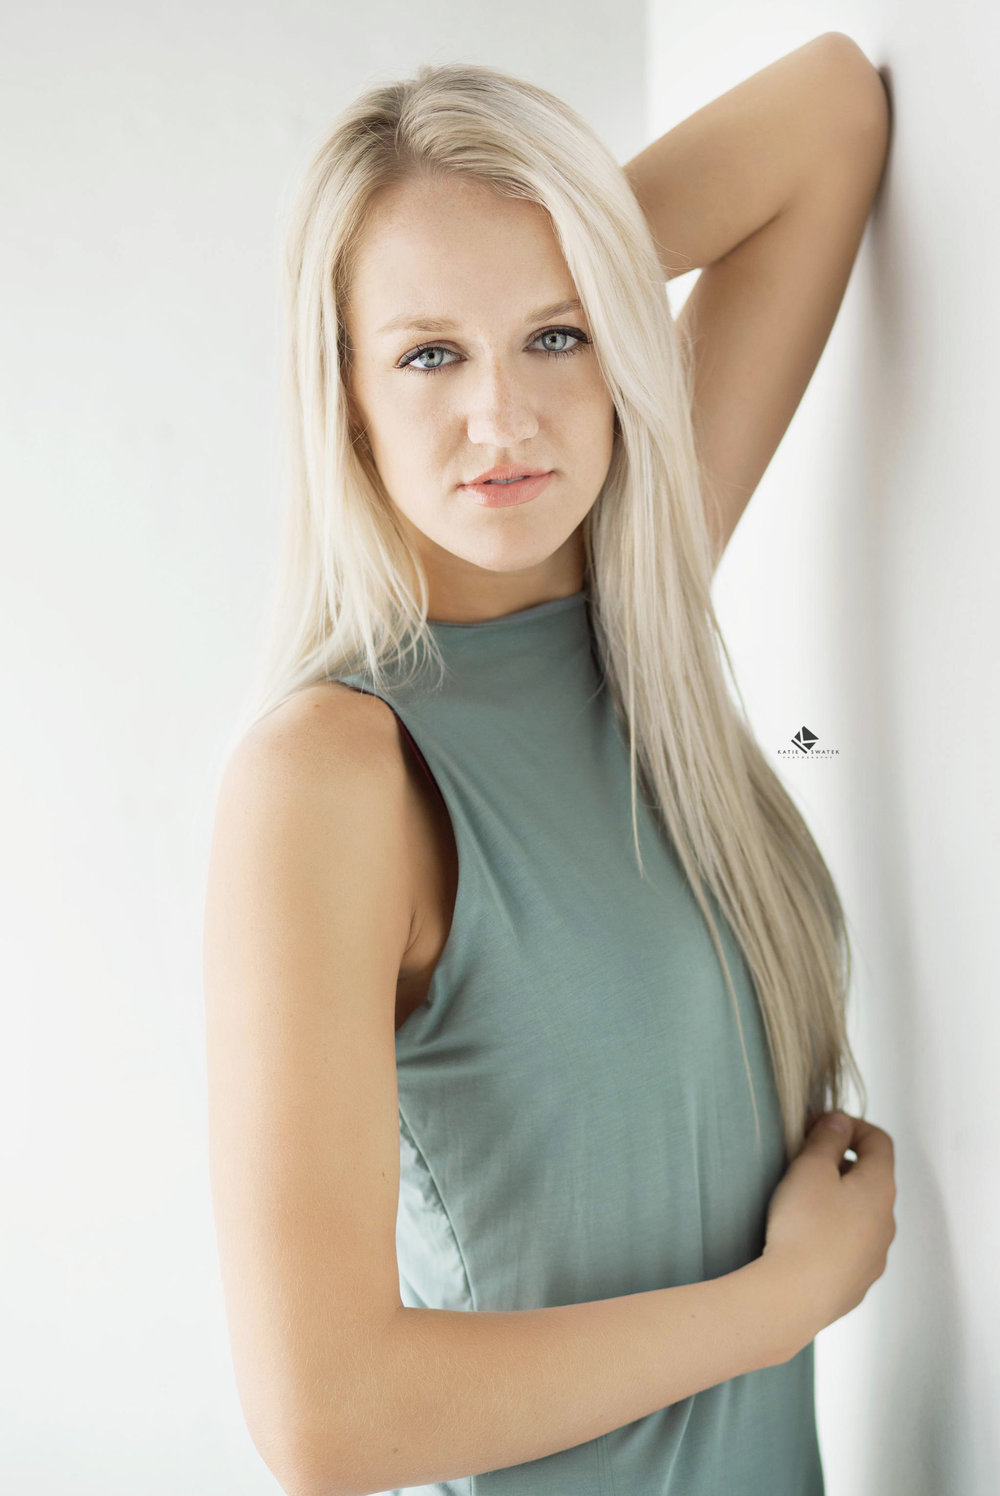 blonde senior girl in a sage green dress leaning against a white wall in a studio set up